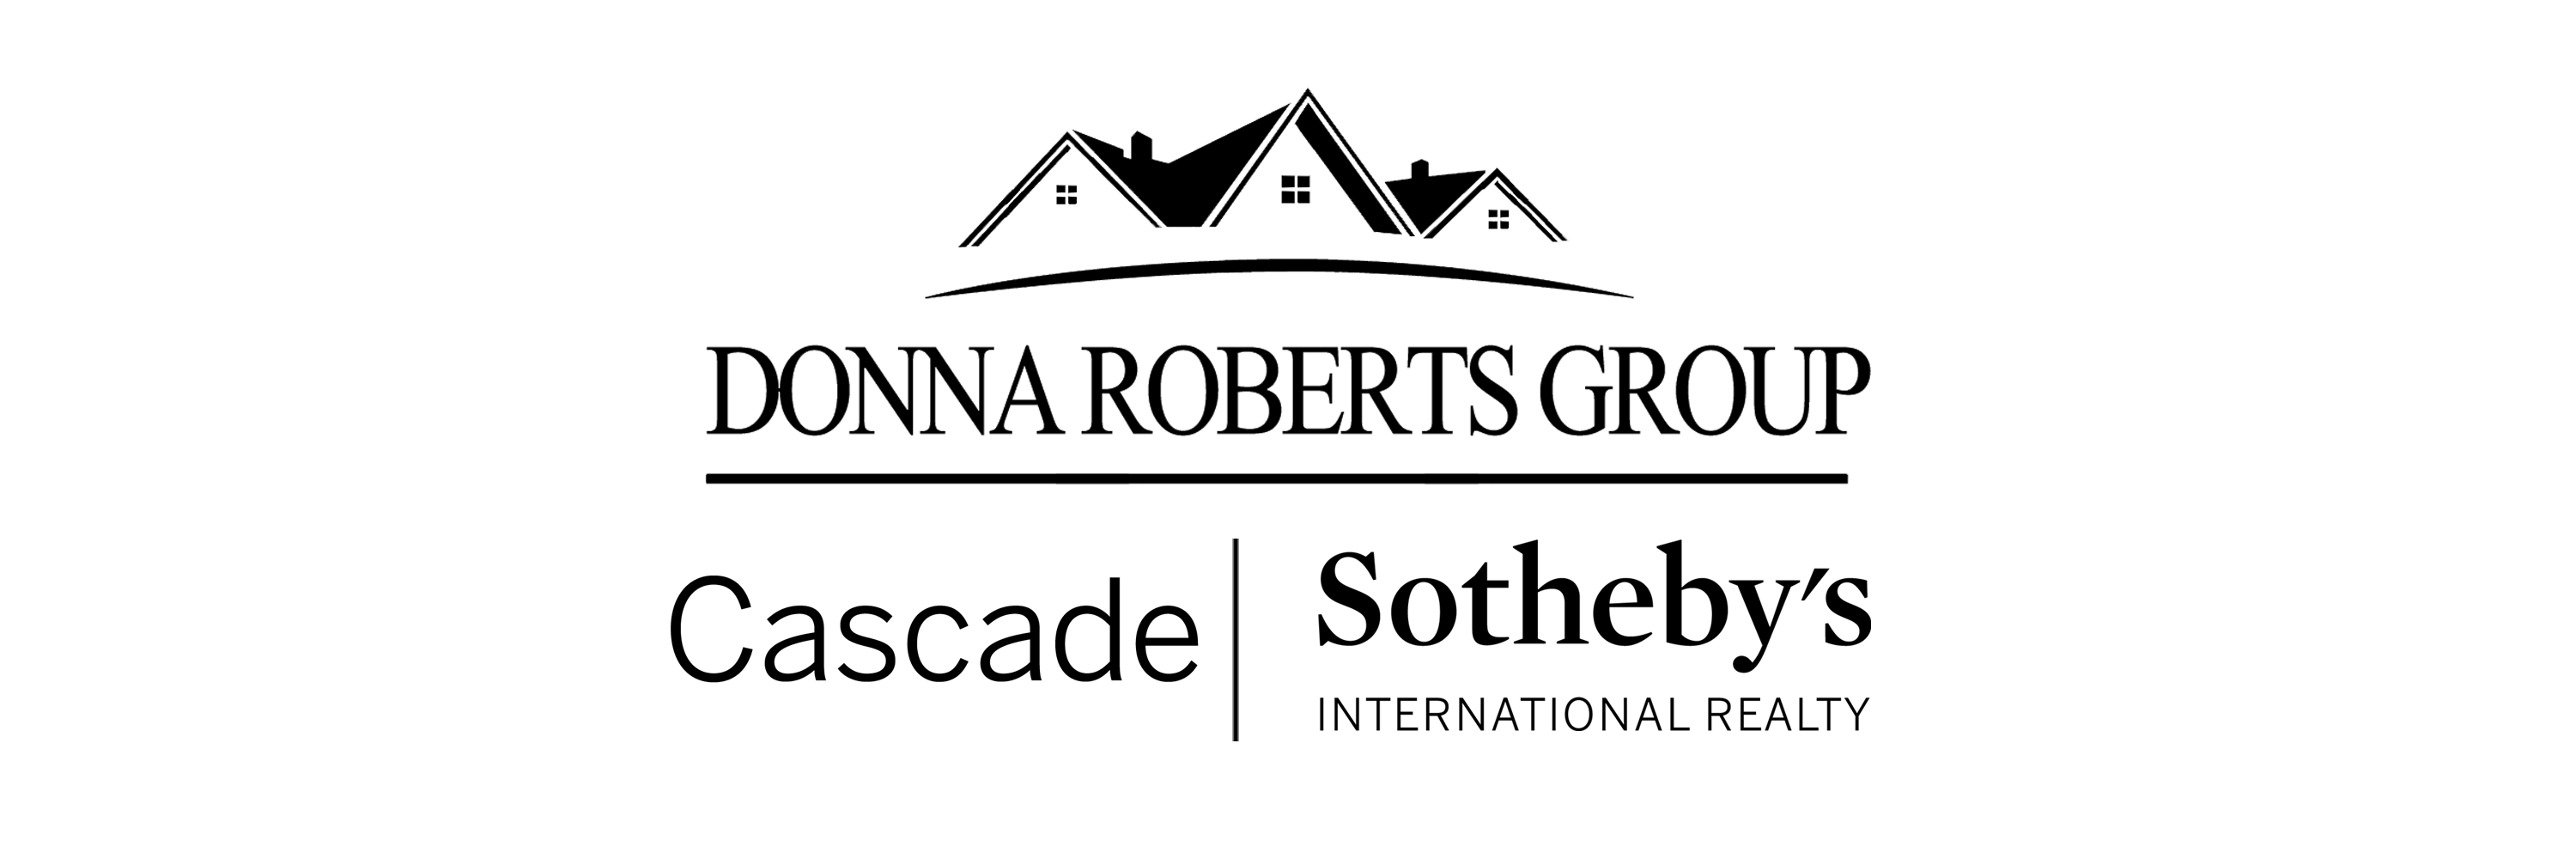 Donna Roberts Group